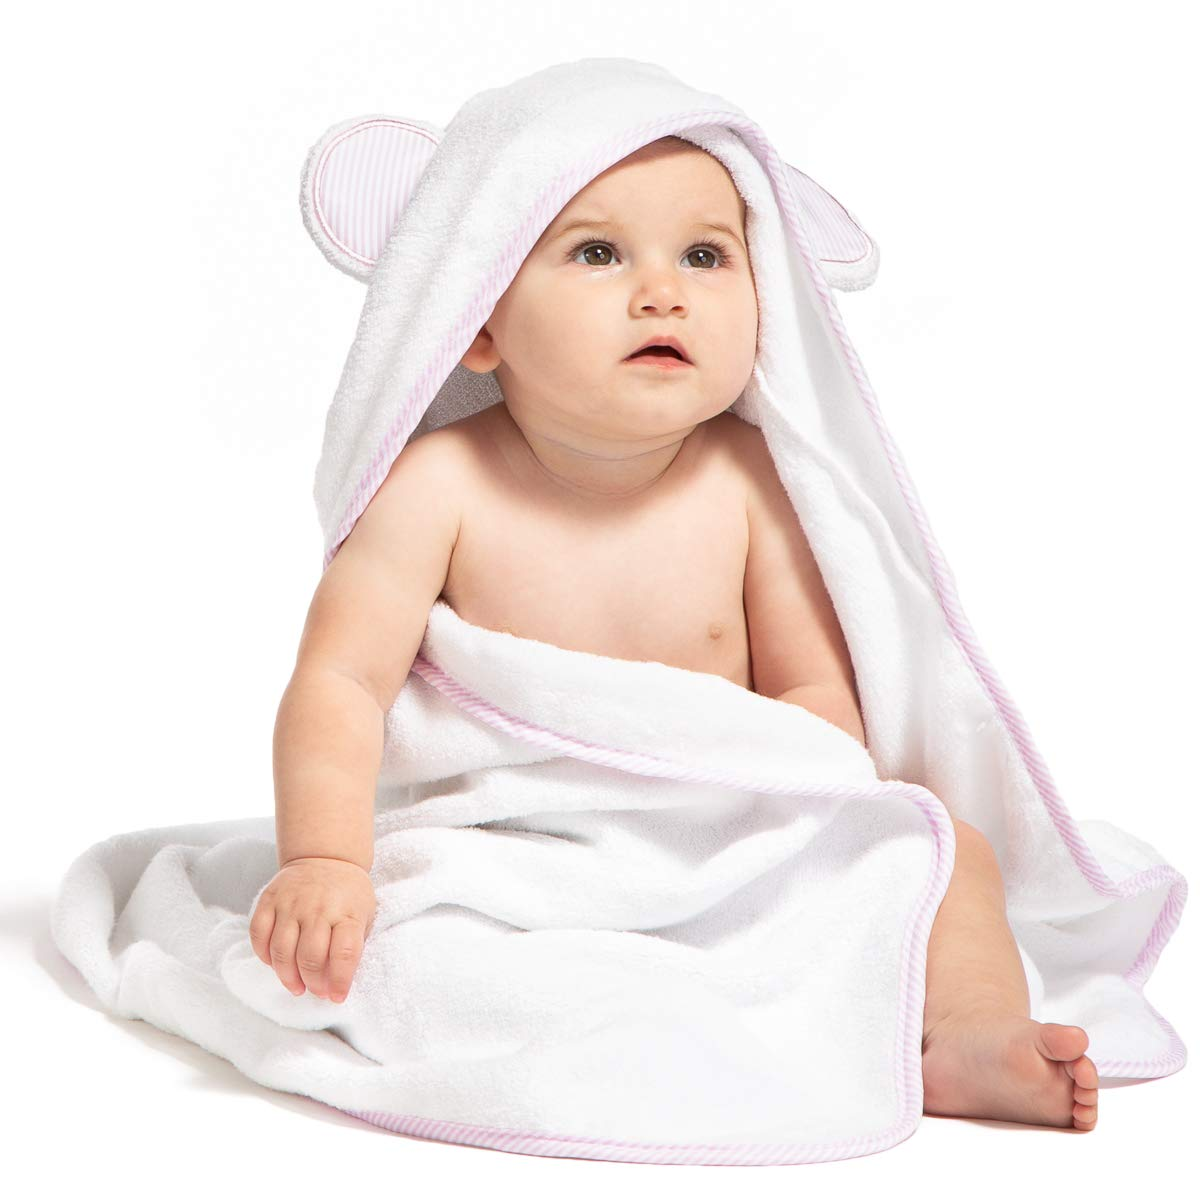 Fishers Finery Soft Absorbant Hooded Towel fo Cloth Set and Max Complete Free Shipping 53% OFF Wash